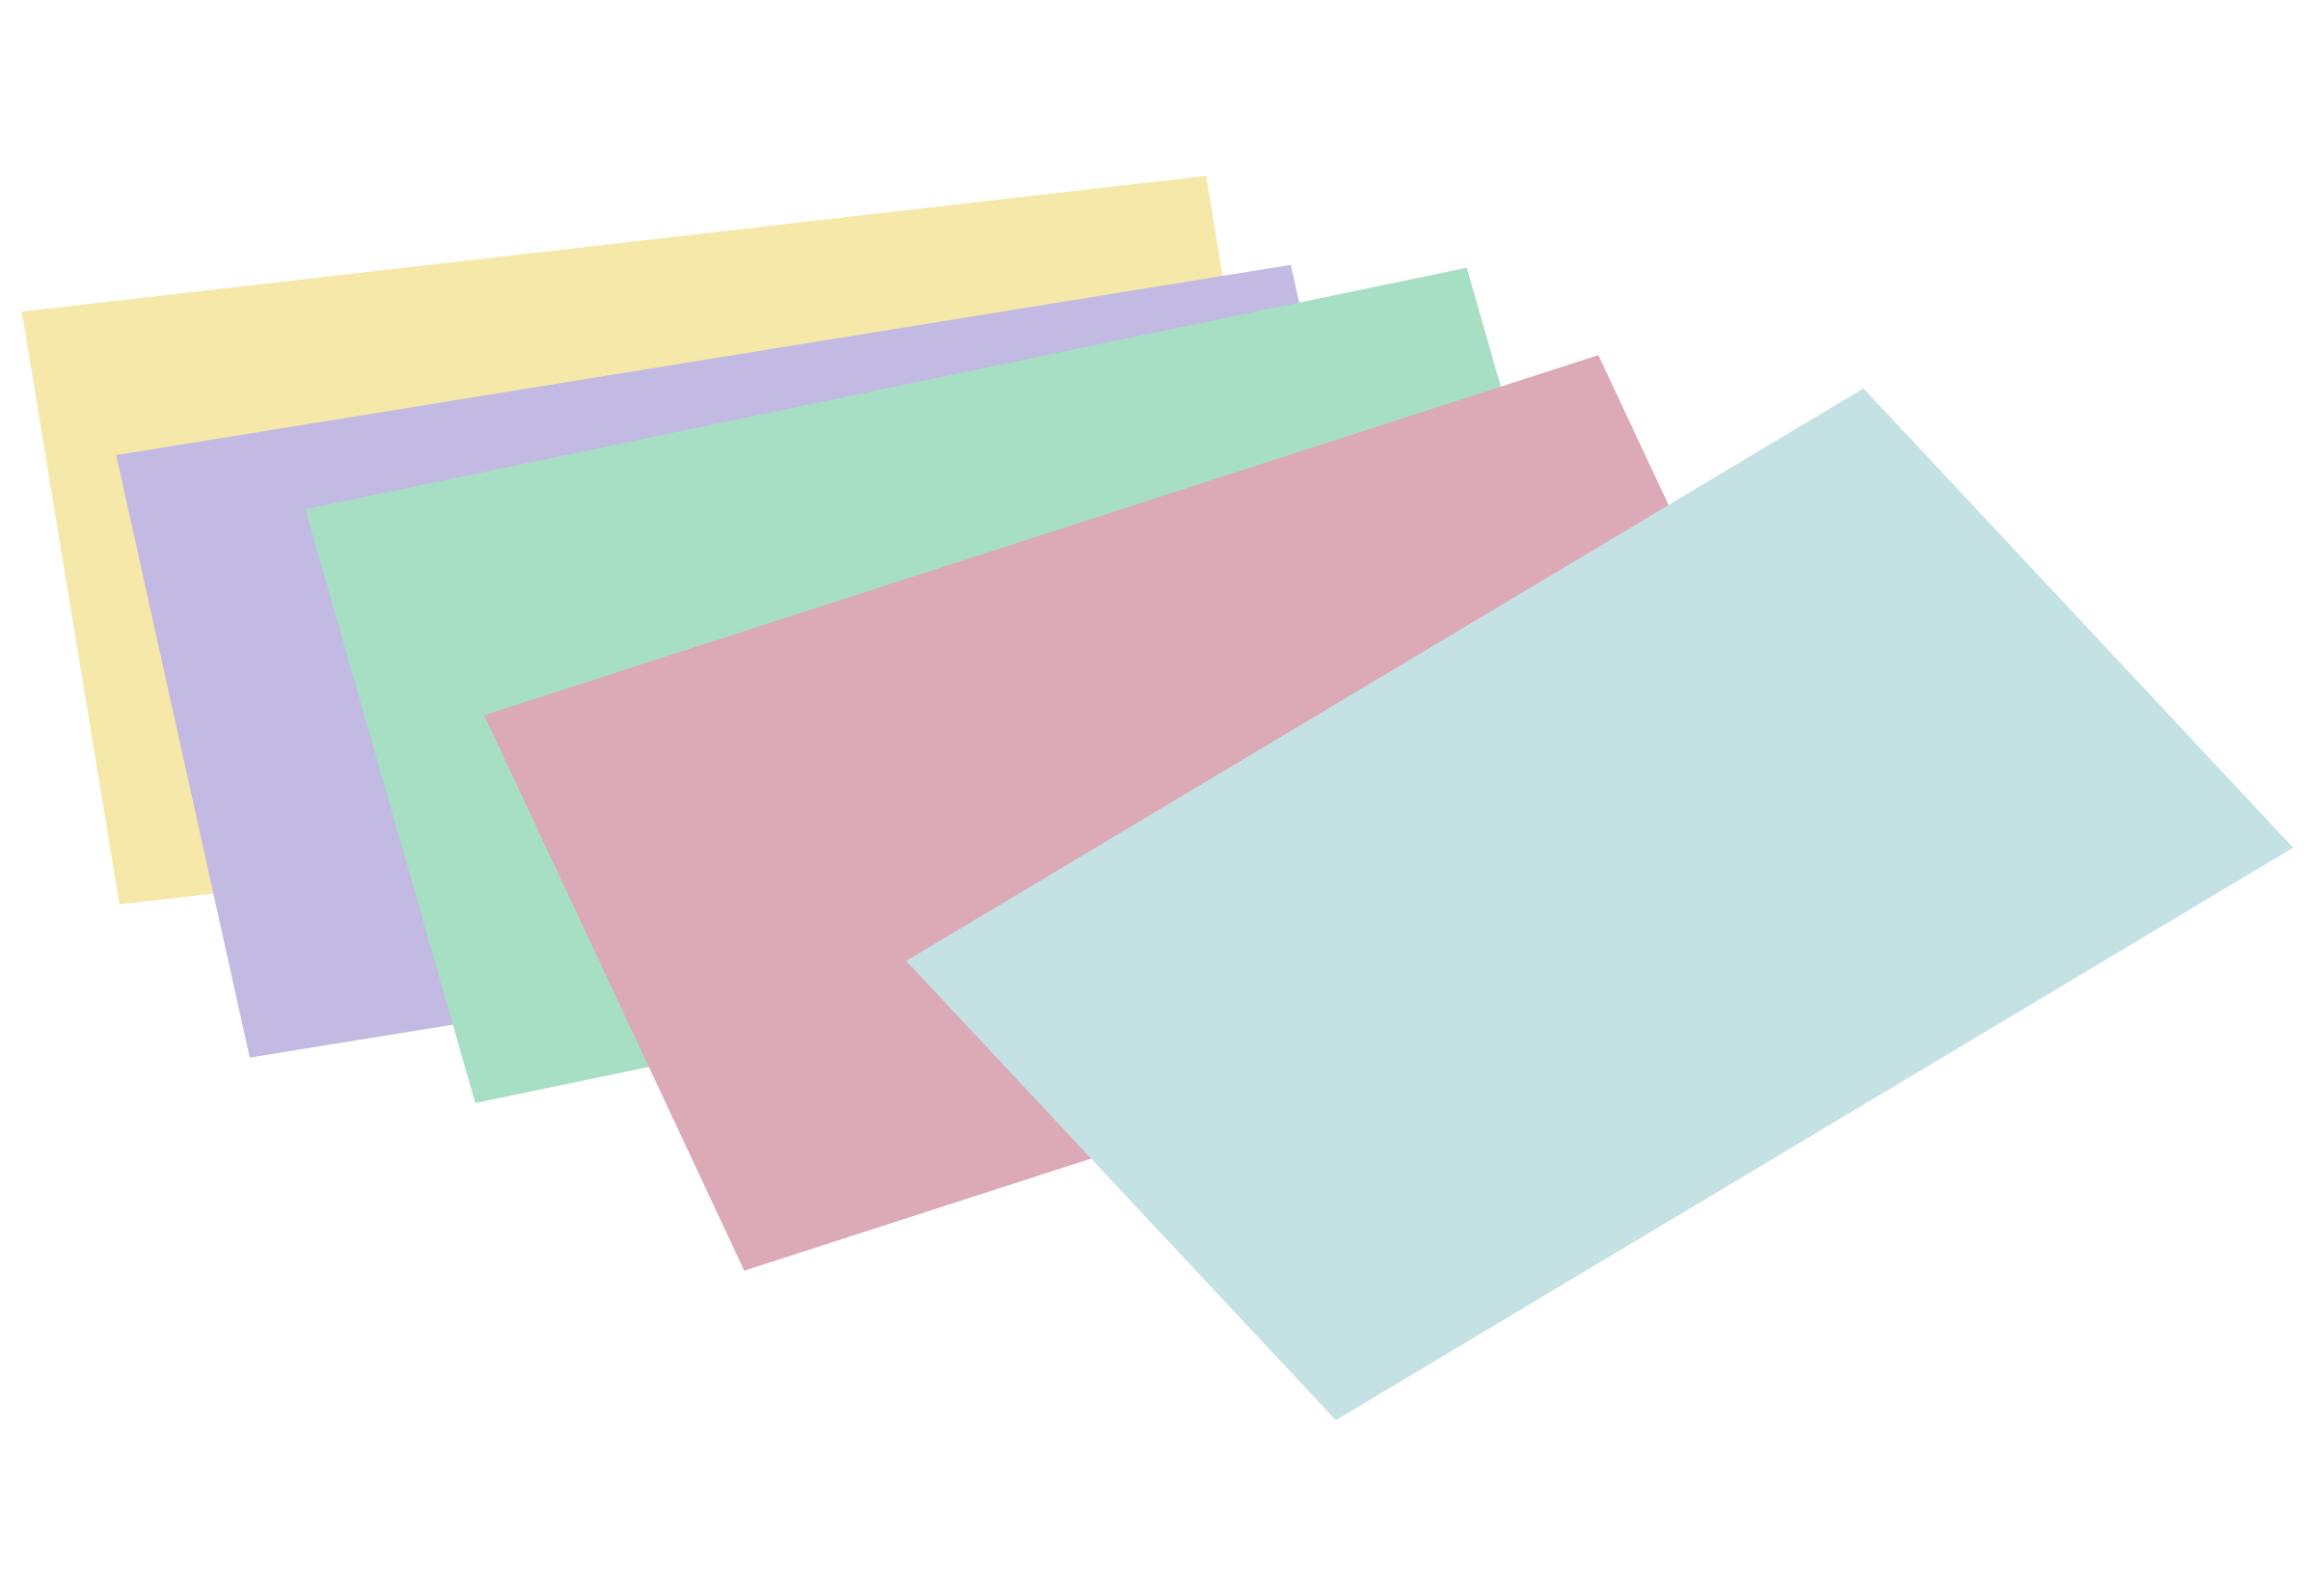 Color clipart card. Stack of unlined colored